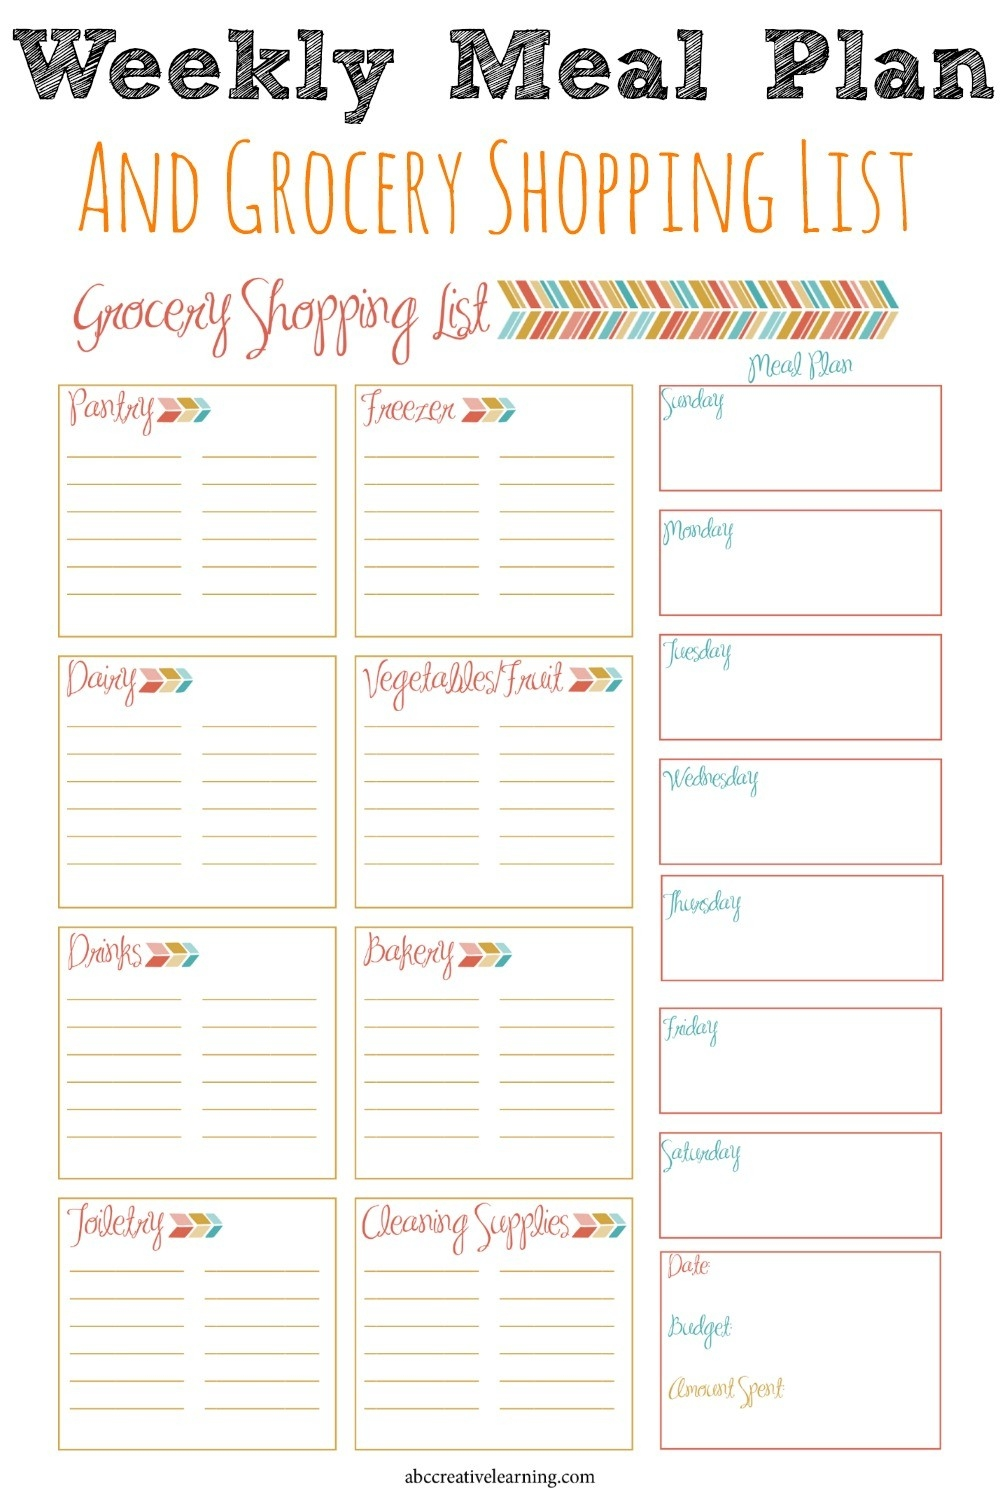 Weekly Meal Planner And Grocery Shopping List | Weekly Meal throughout Meal Planner With Grocery List 25523